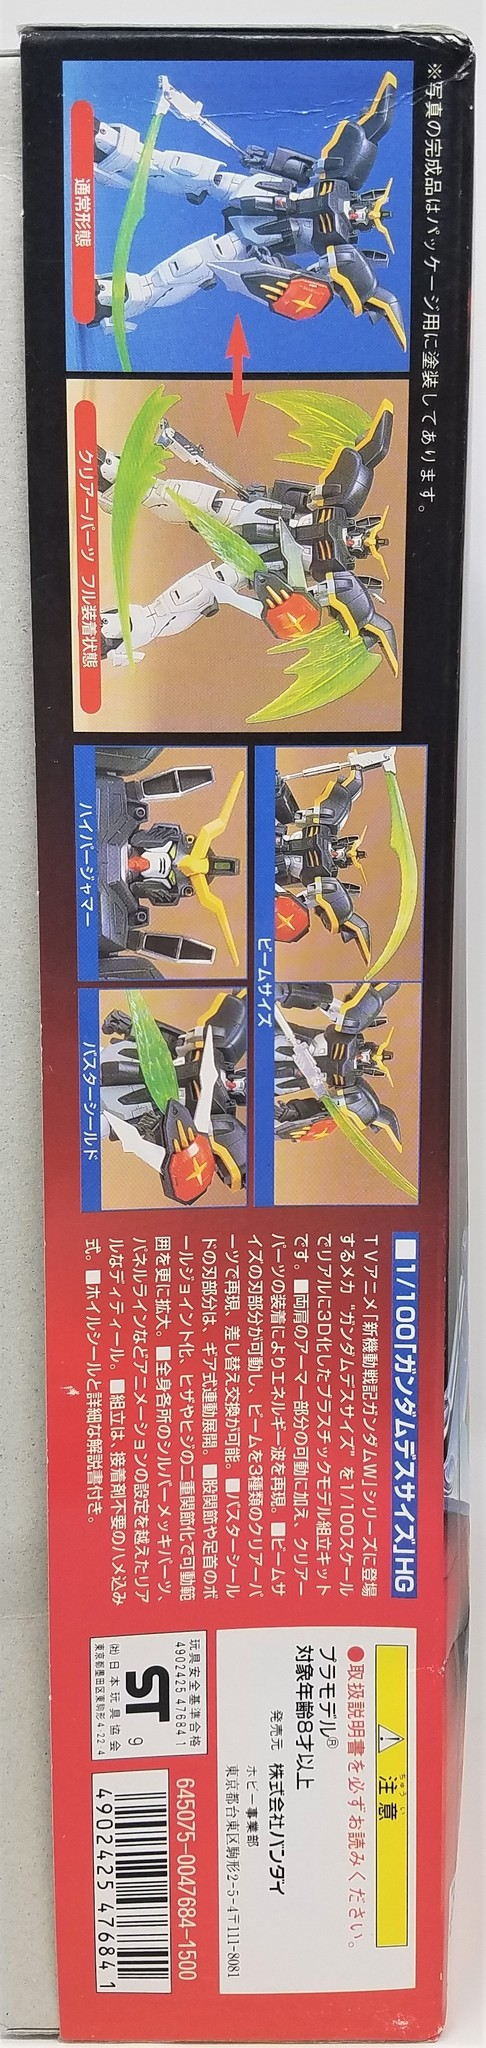 Gundam 1/100 Snap Model Kit: Gundam Deathscythe